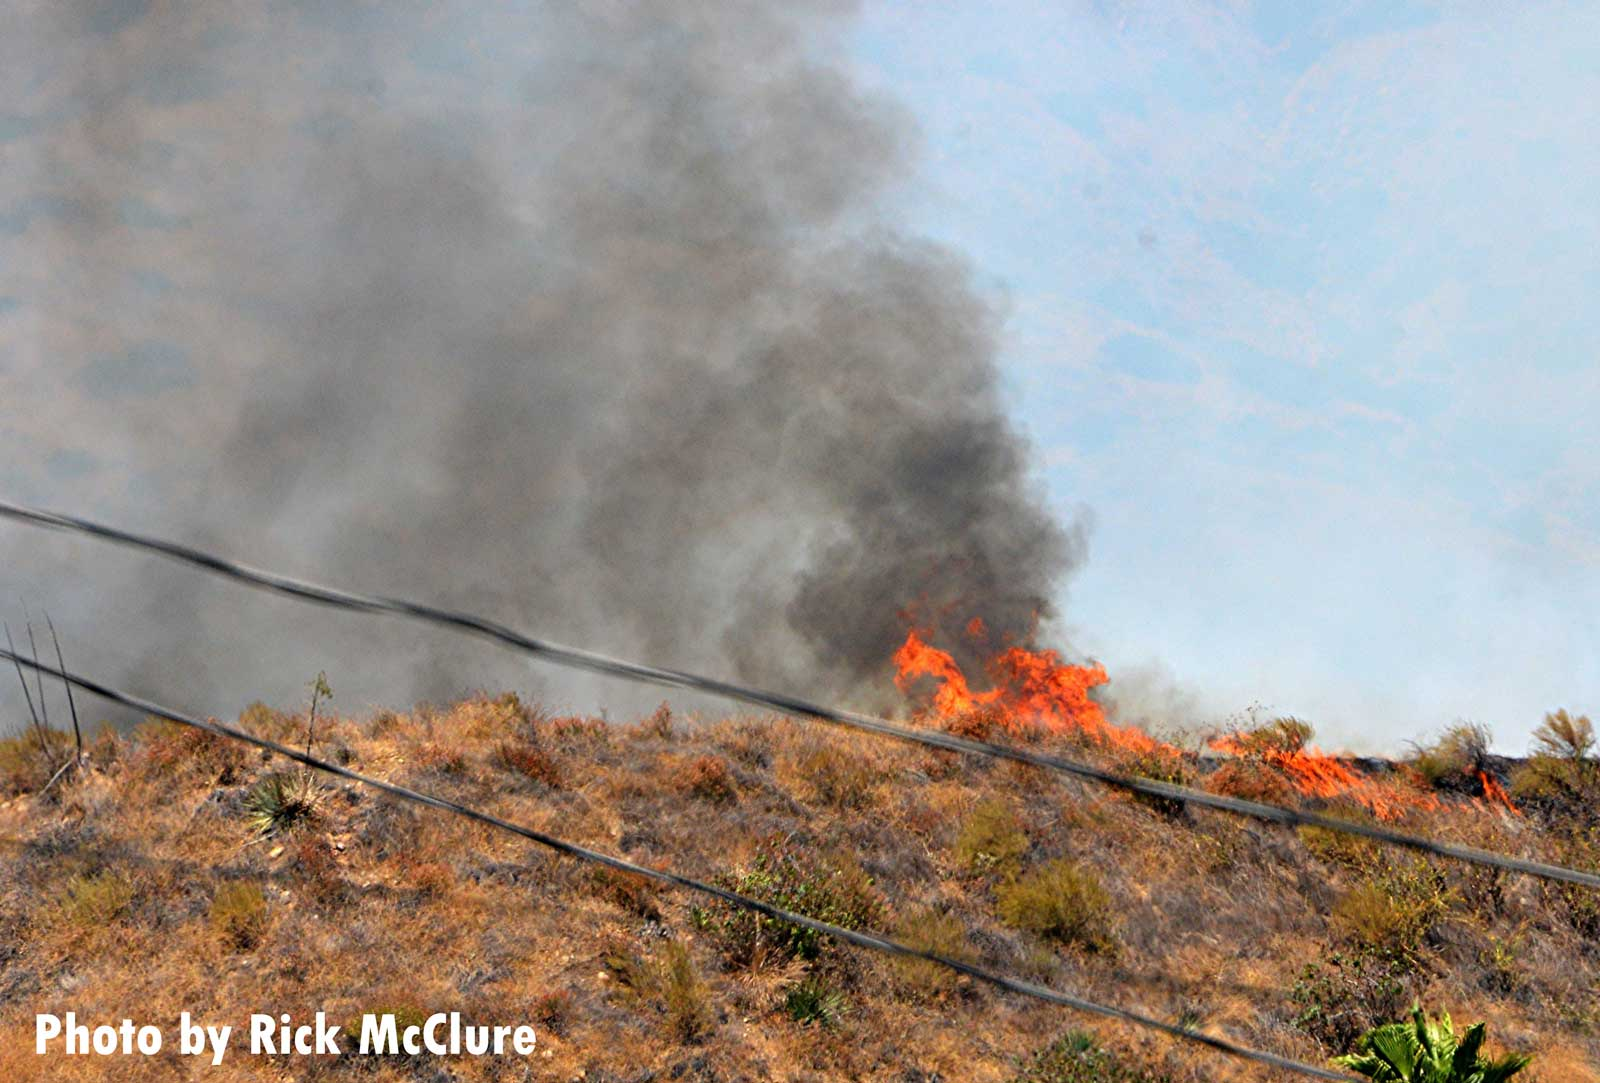 Flames crest a hill during a wildfire